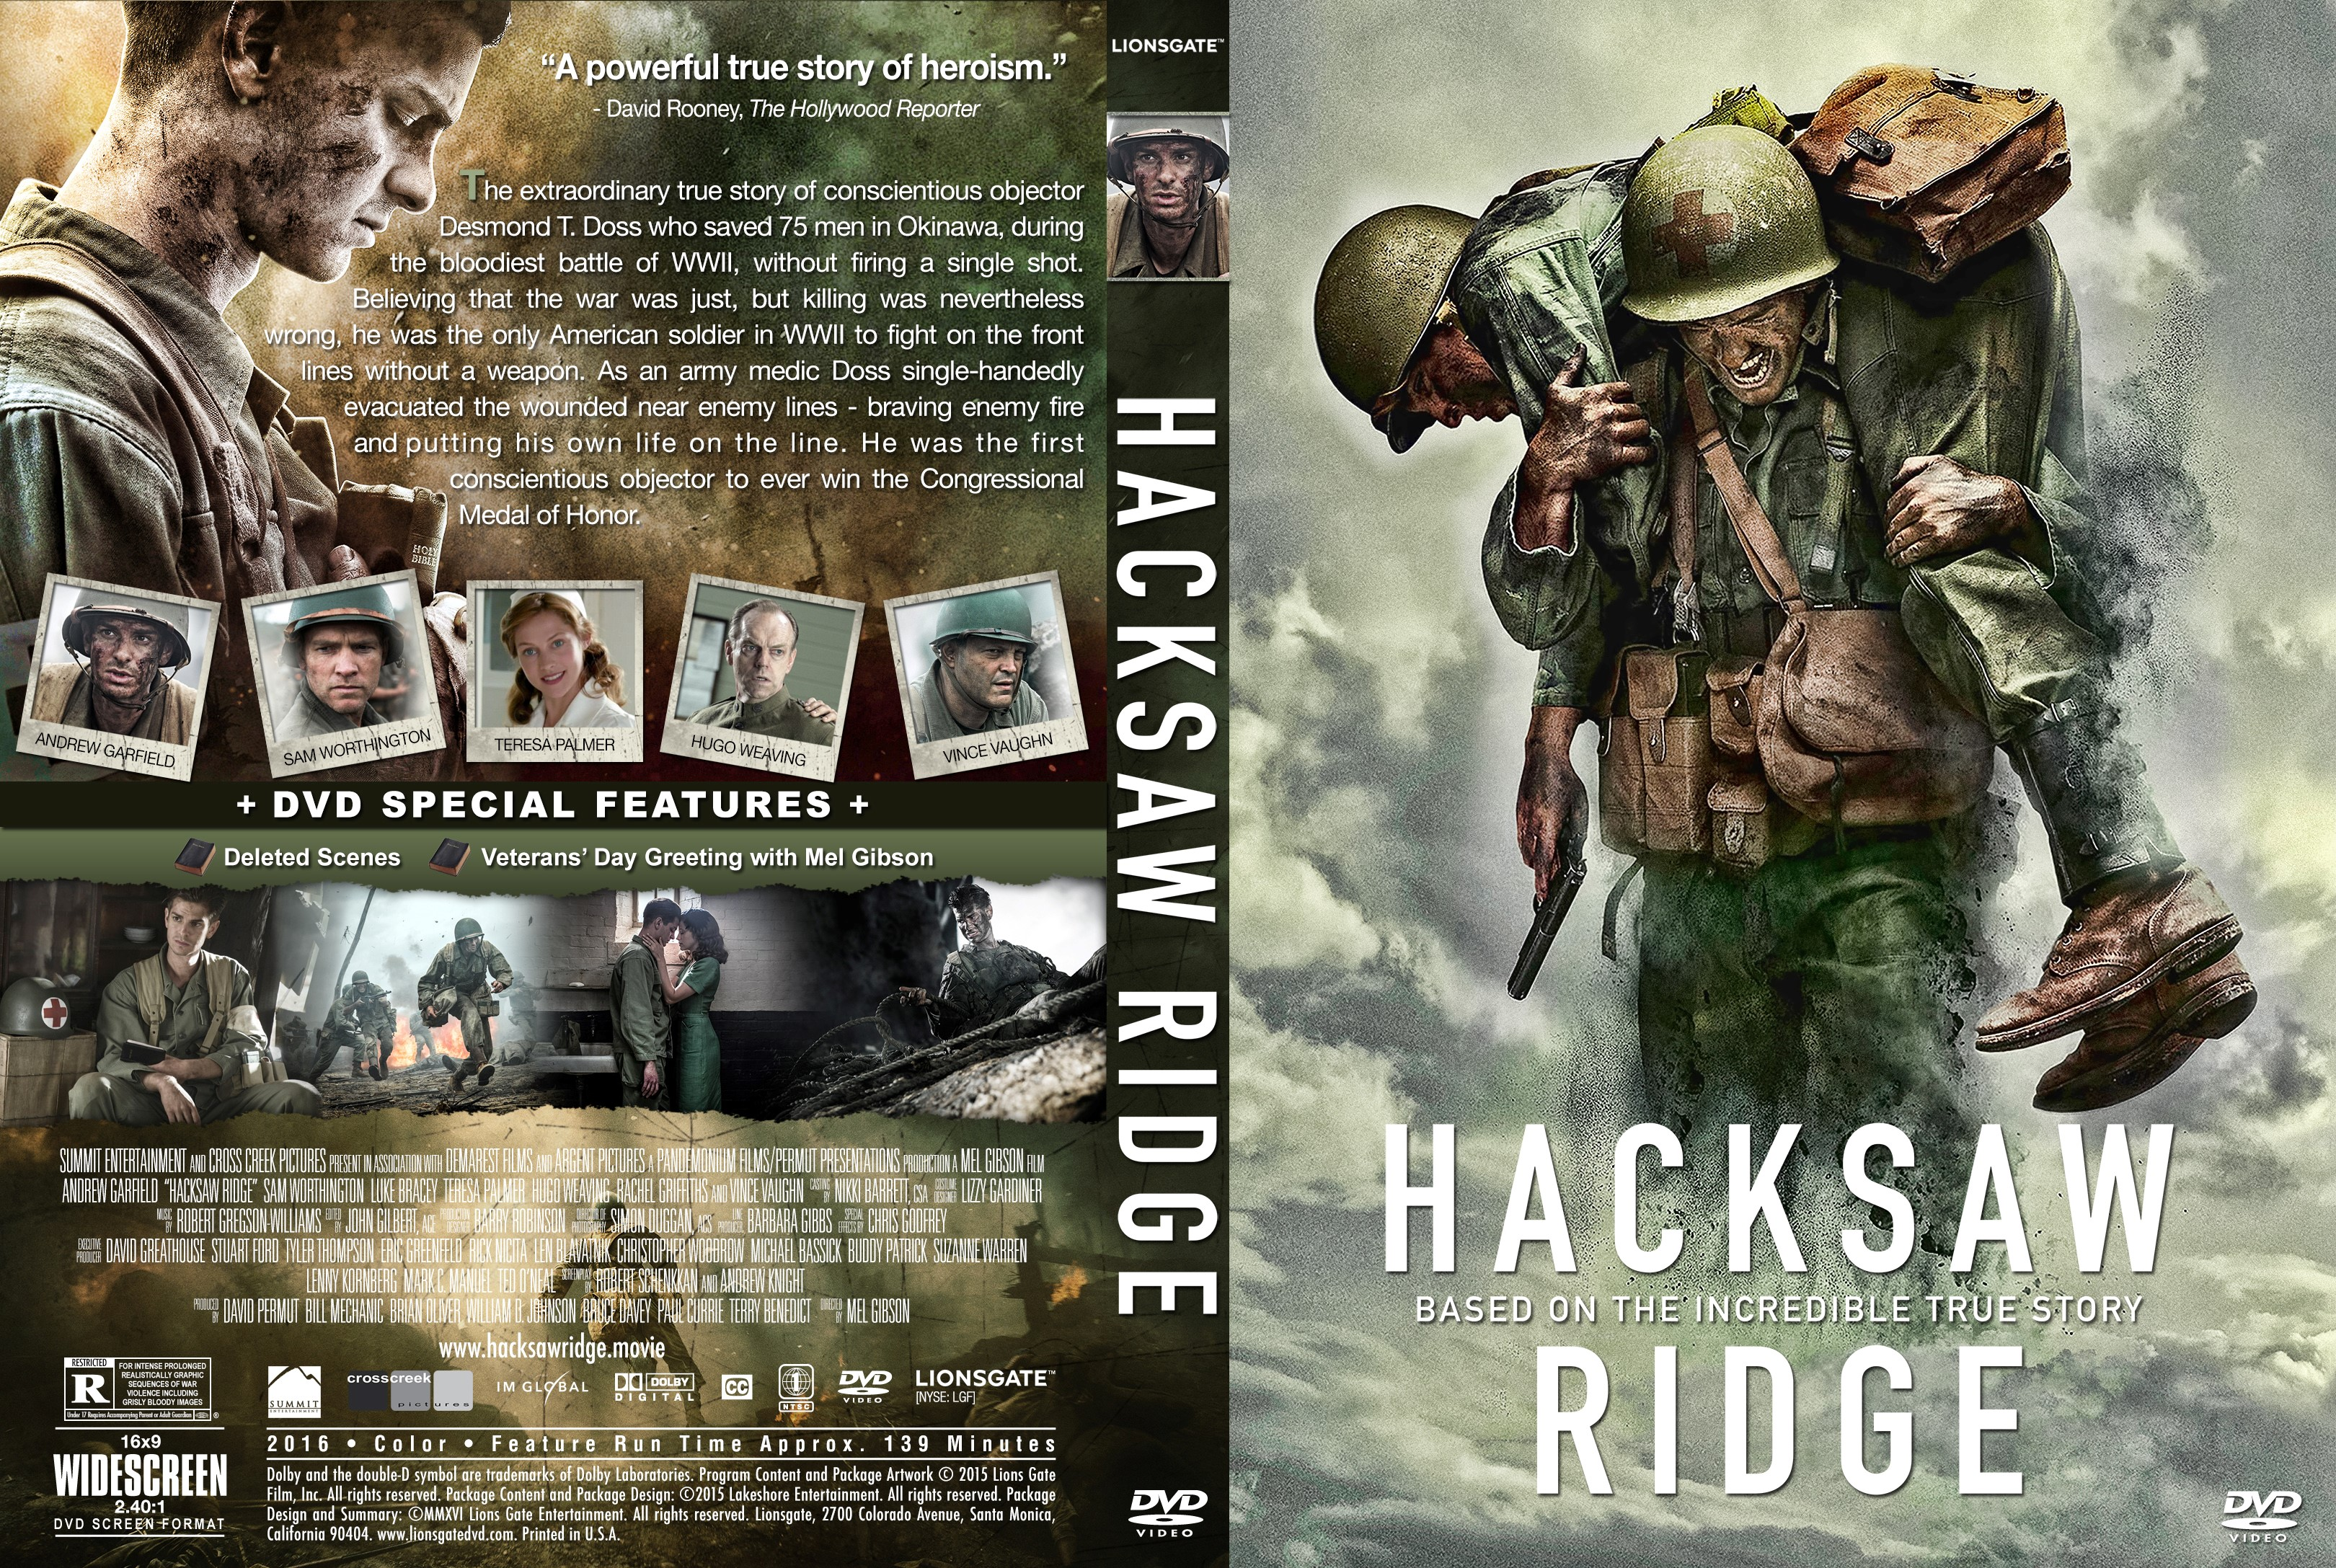 Hacksaw Ridge DVD Cover | Cover Addict - Free DVD, Bluray ...